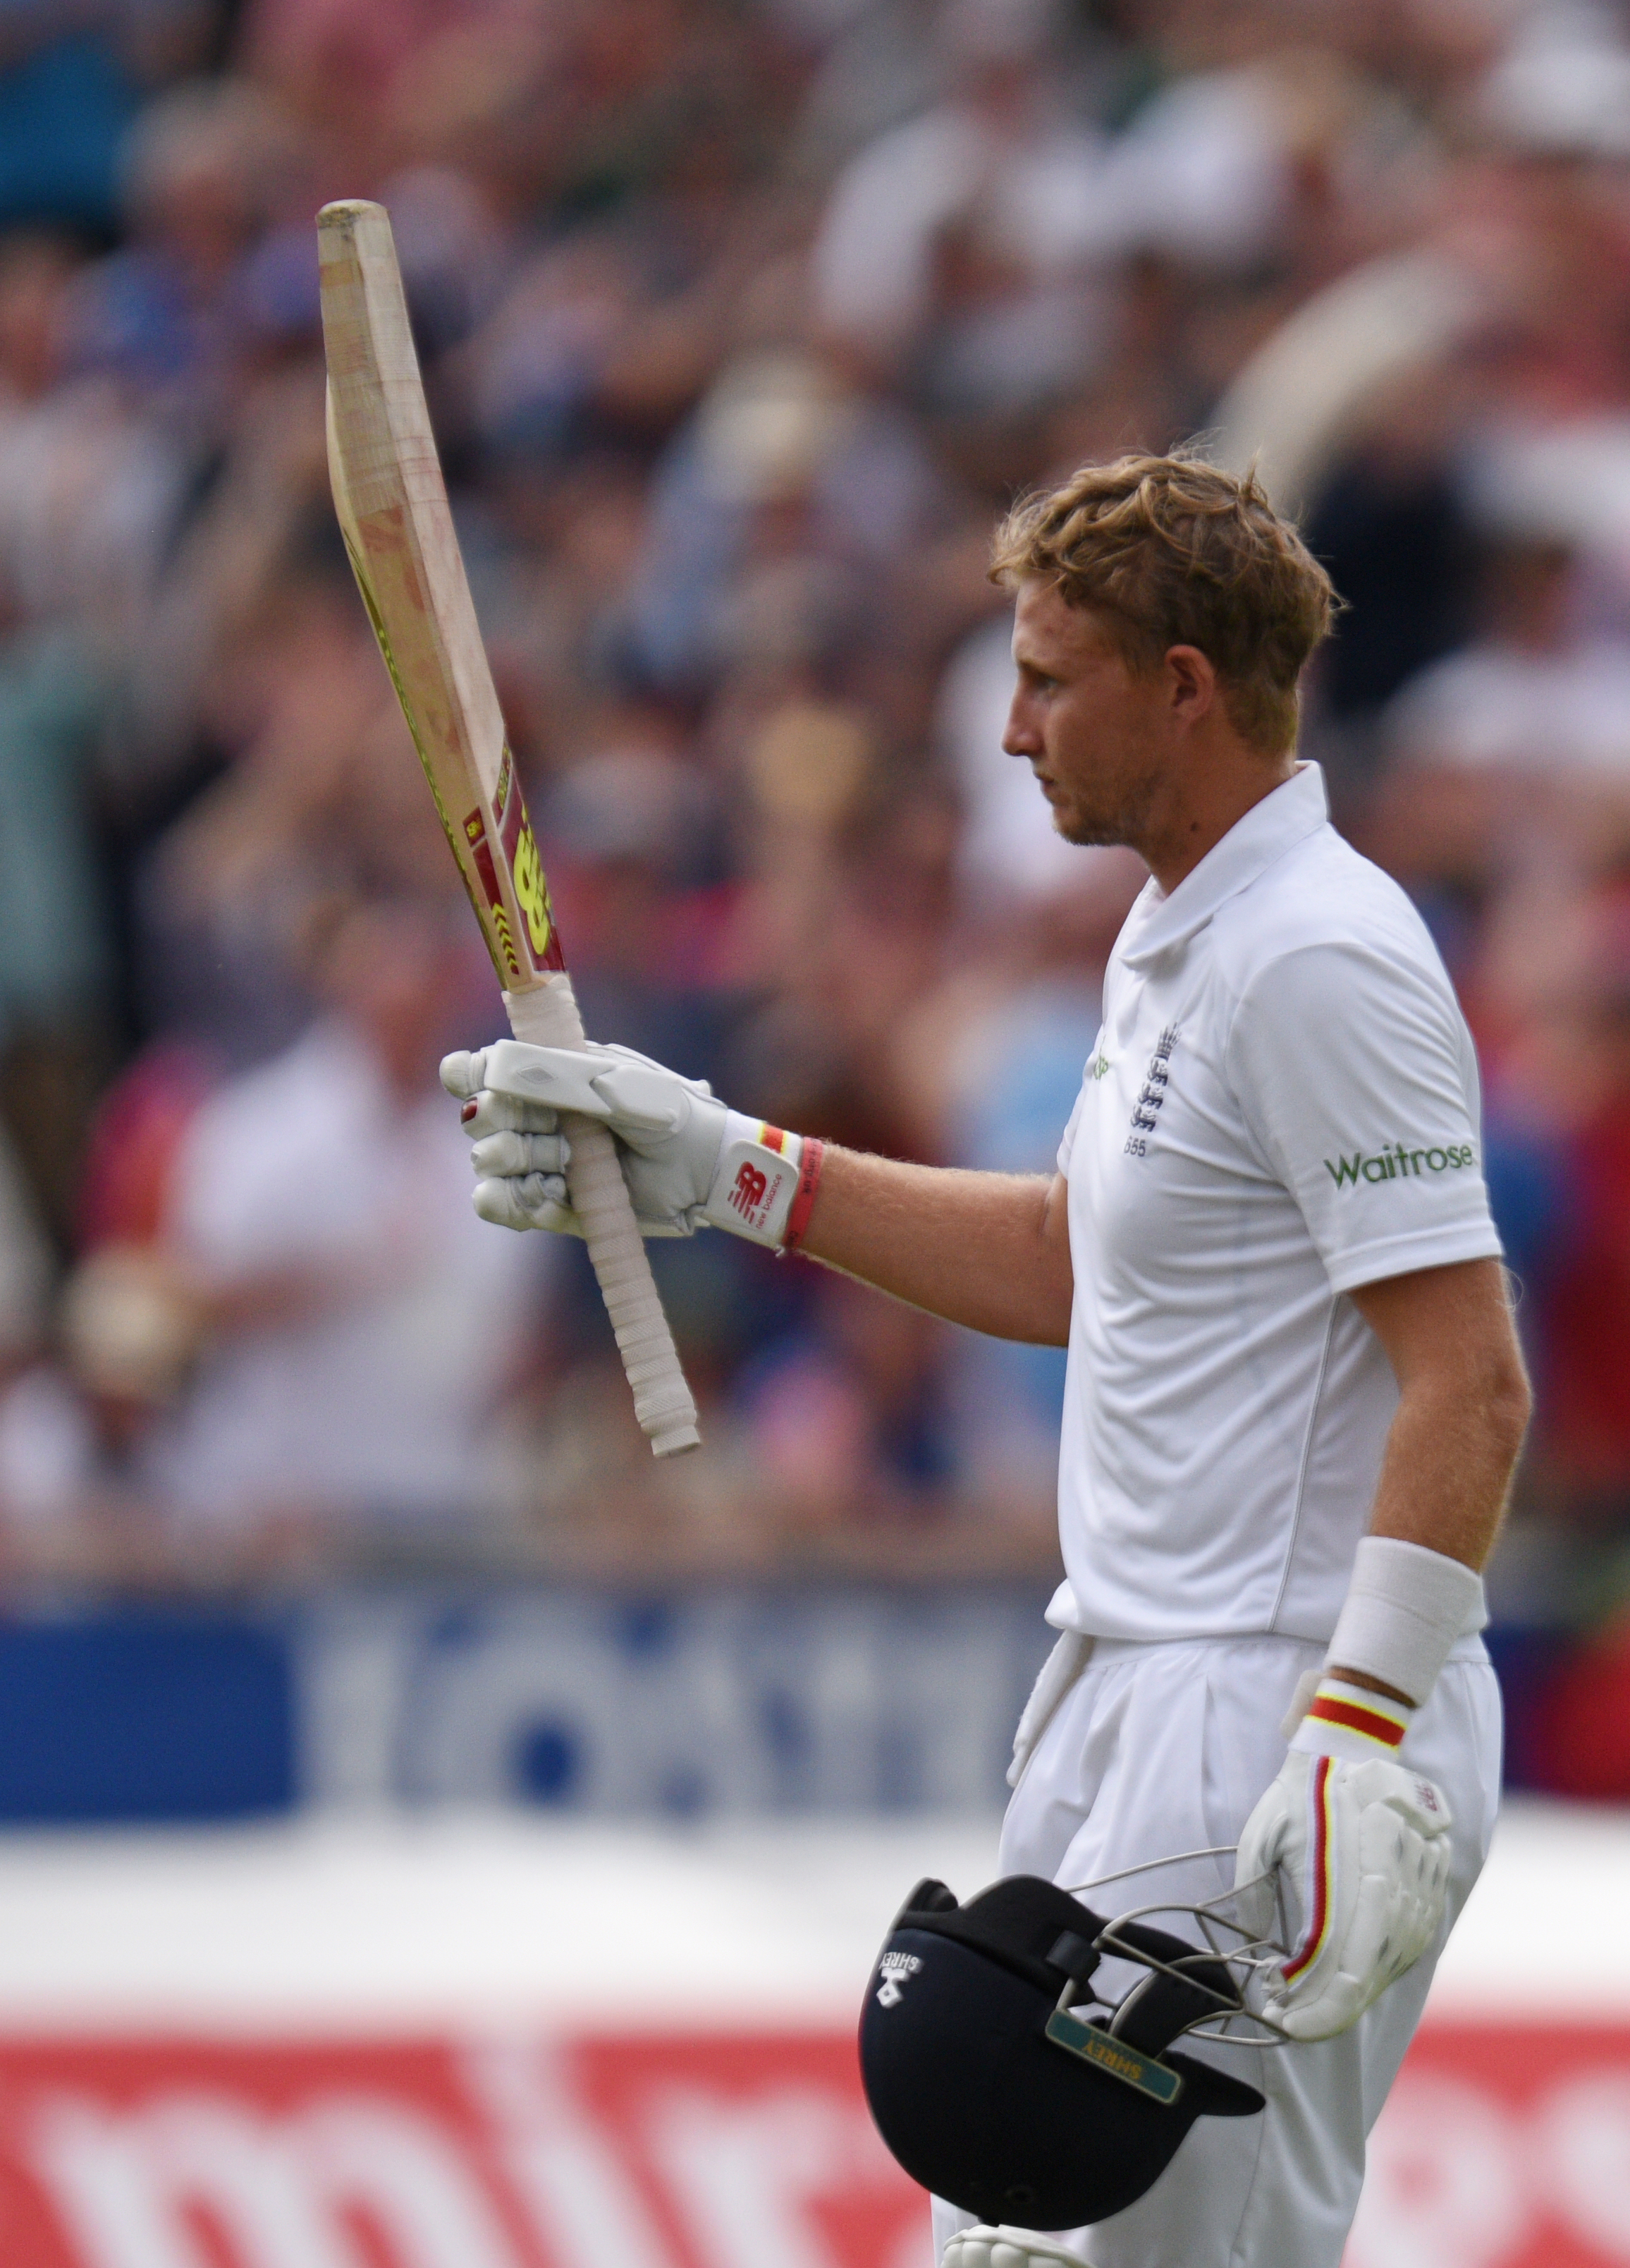 England's Joe Root leaves the pitch after being dismissed for 254 on the second day of the second Test cricket match between England and Pakistan at Old Trafford Cricket Ground in Manchester, England on July 23, 2016. / AFP PHOTO / OLI SCARFF